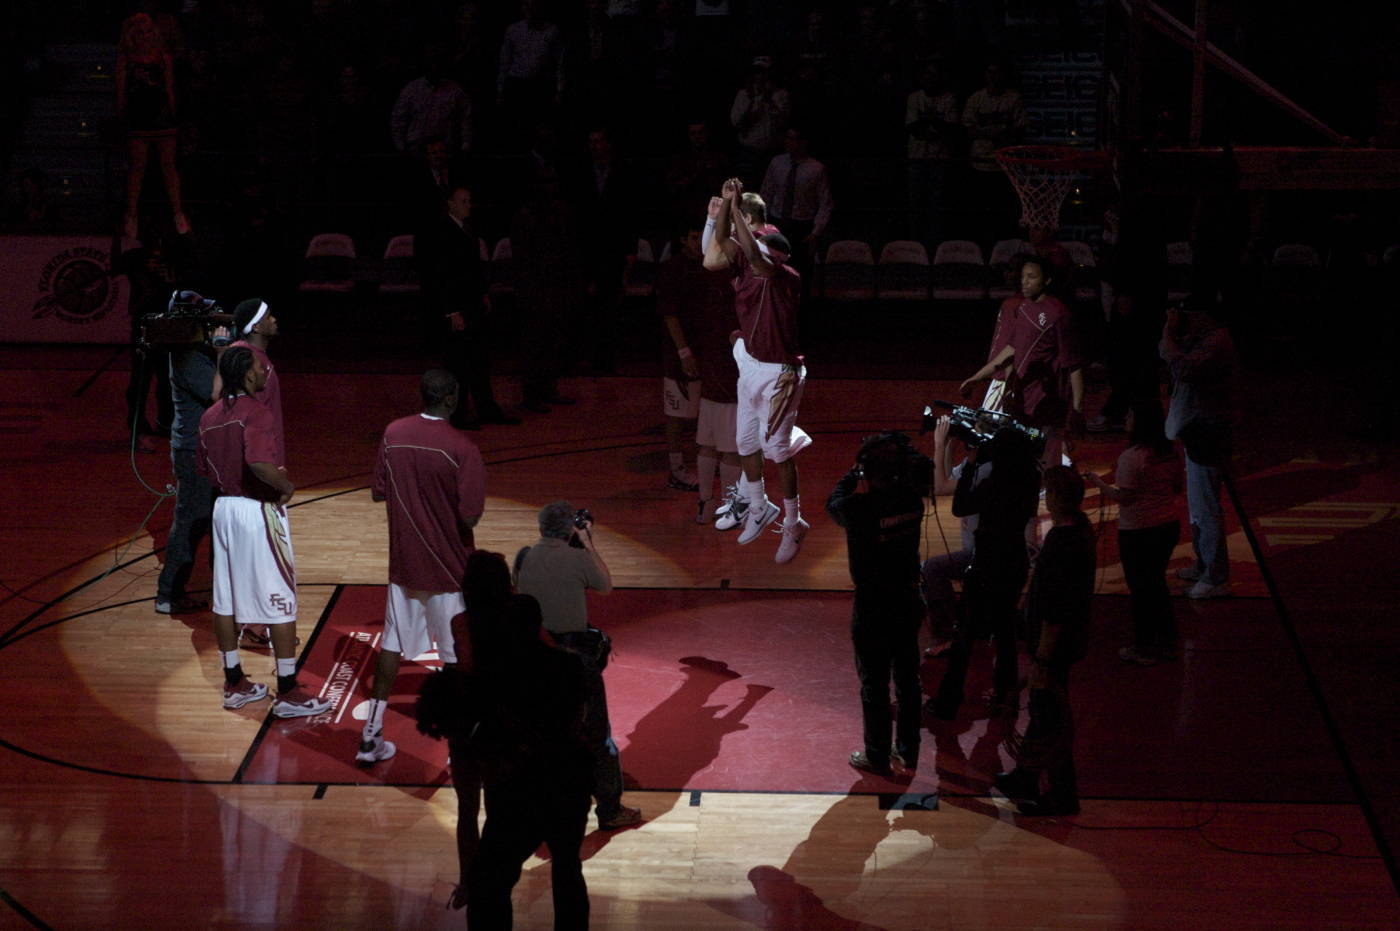 Pre-game introductions